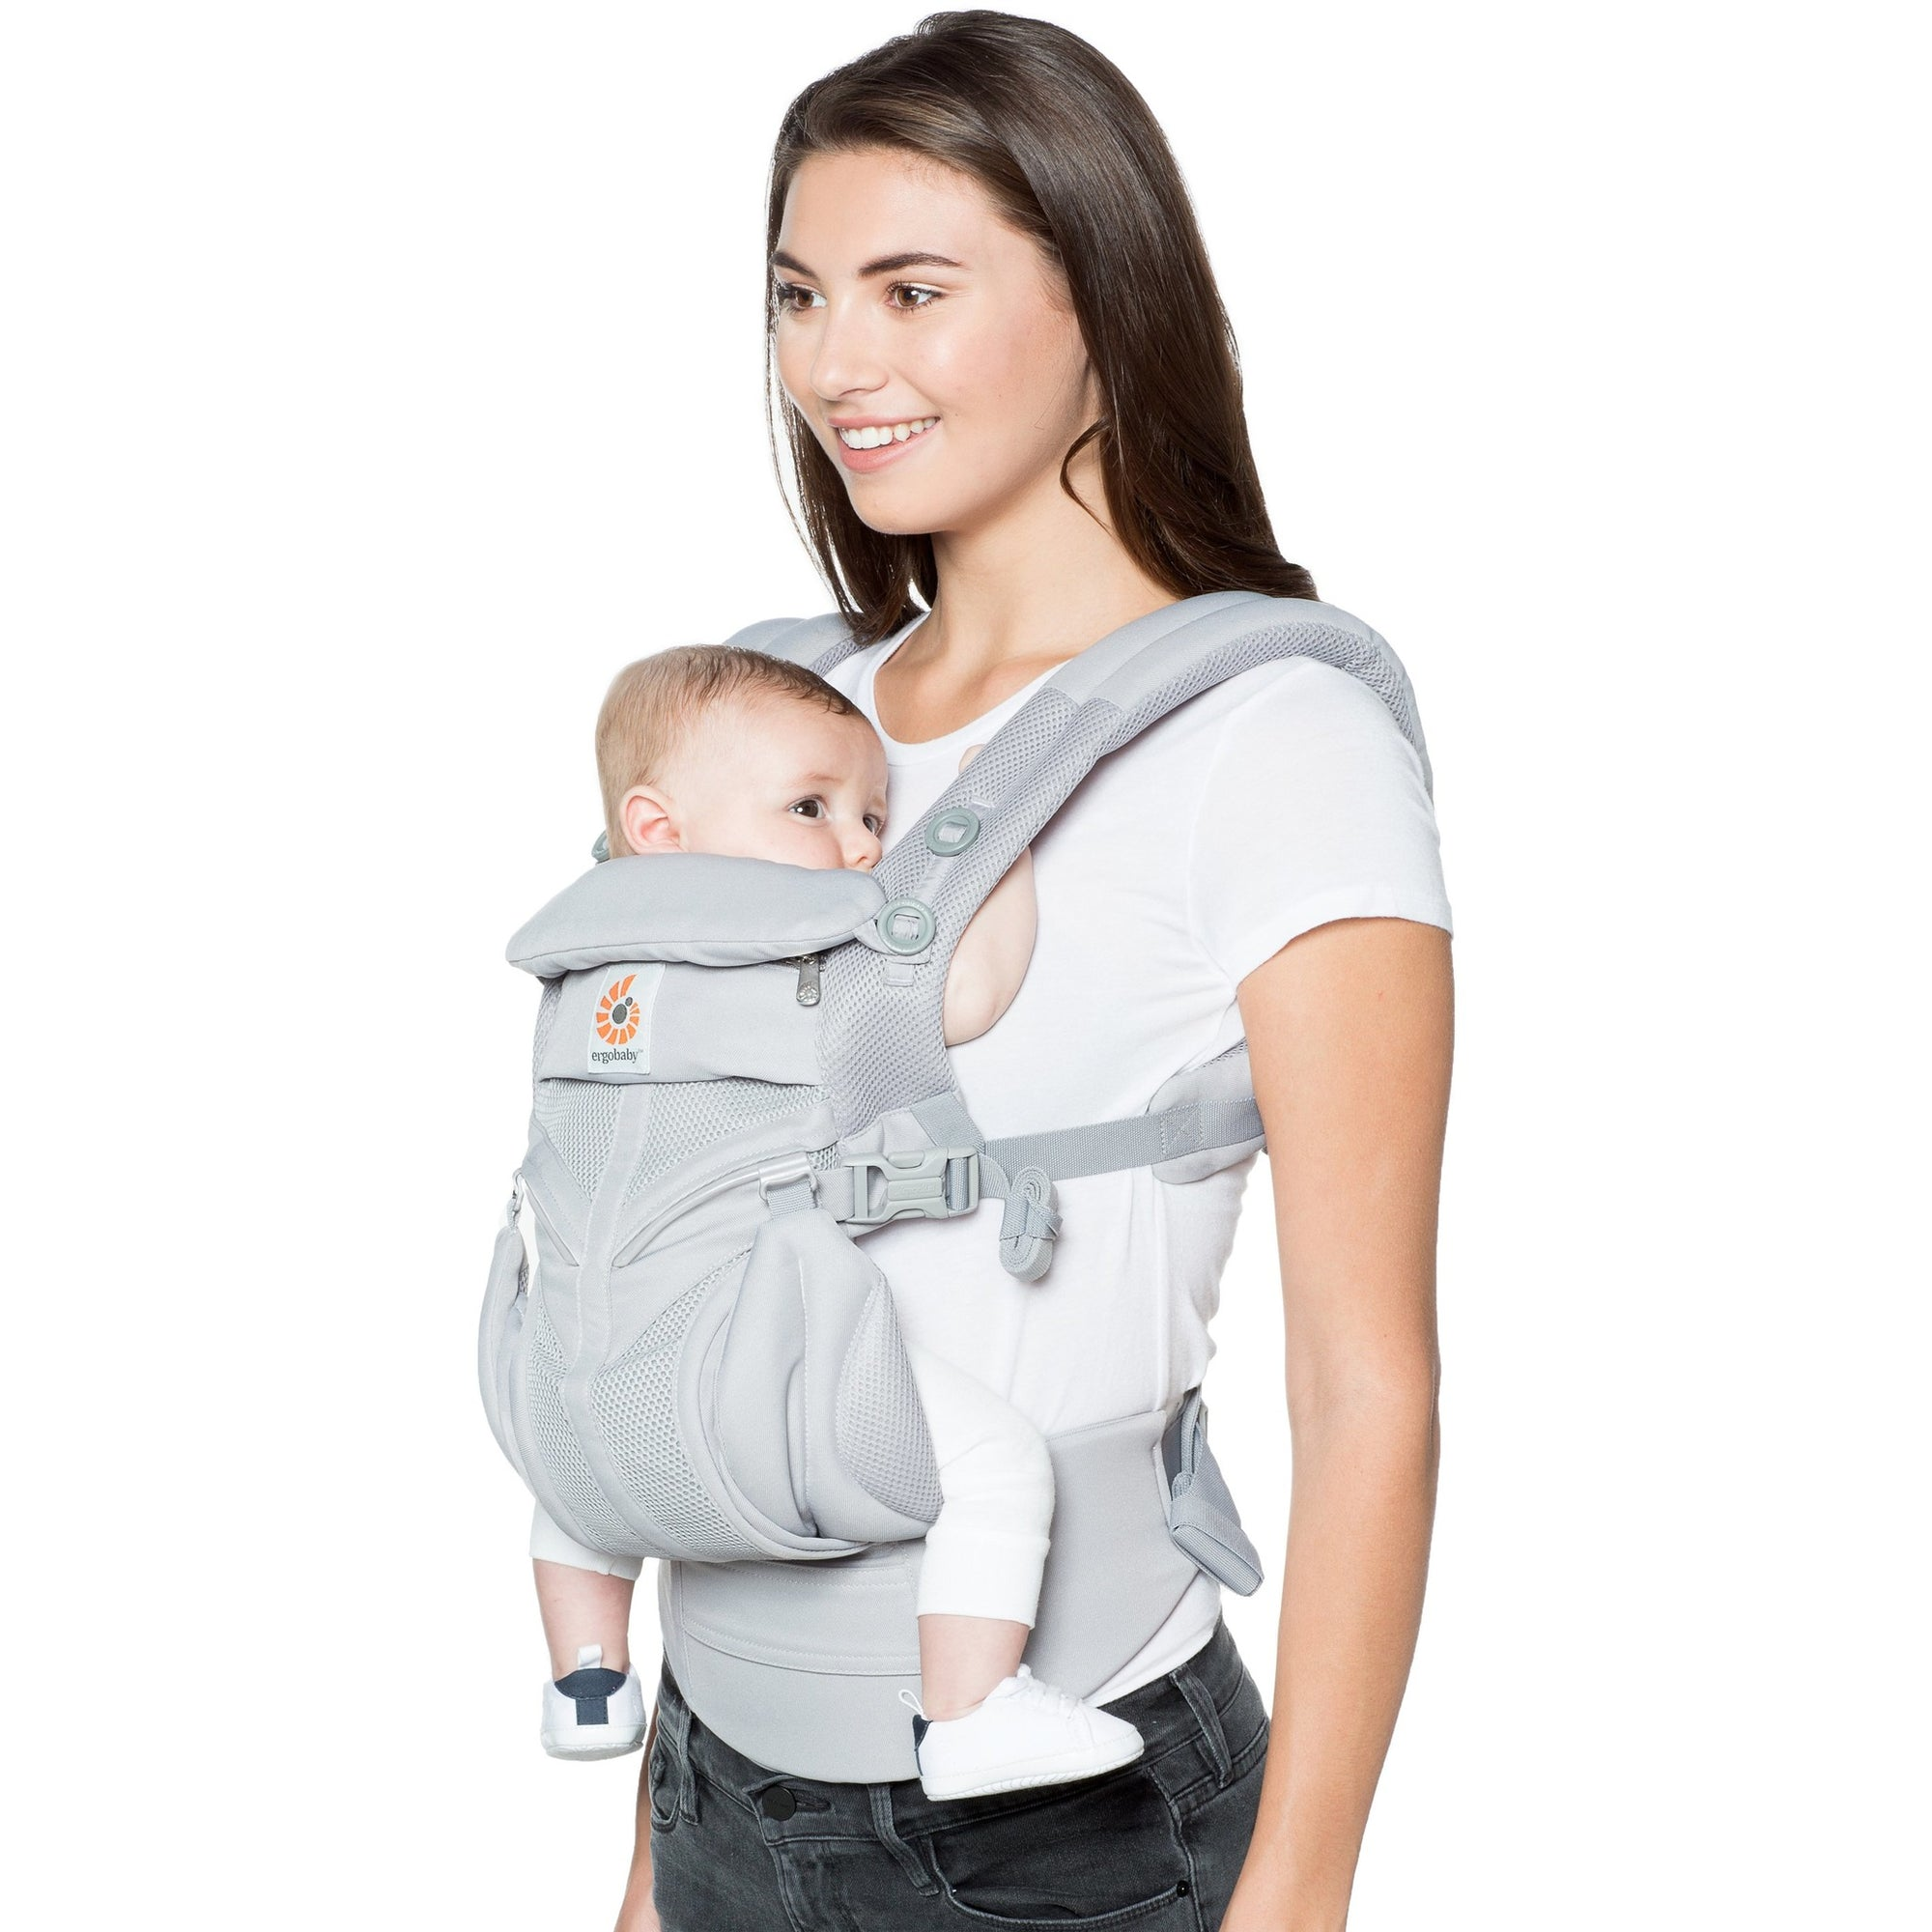 6bb8caea843 Ergobaby Omni 360 Cool Air Mesh Carrier - Pearl Grey - Baby Carrier -  Ergobaby -